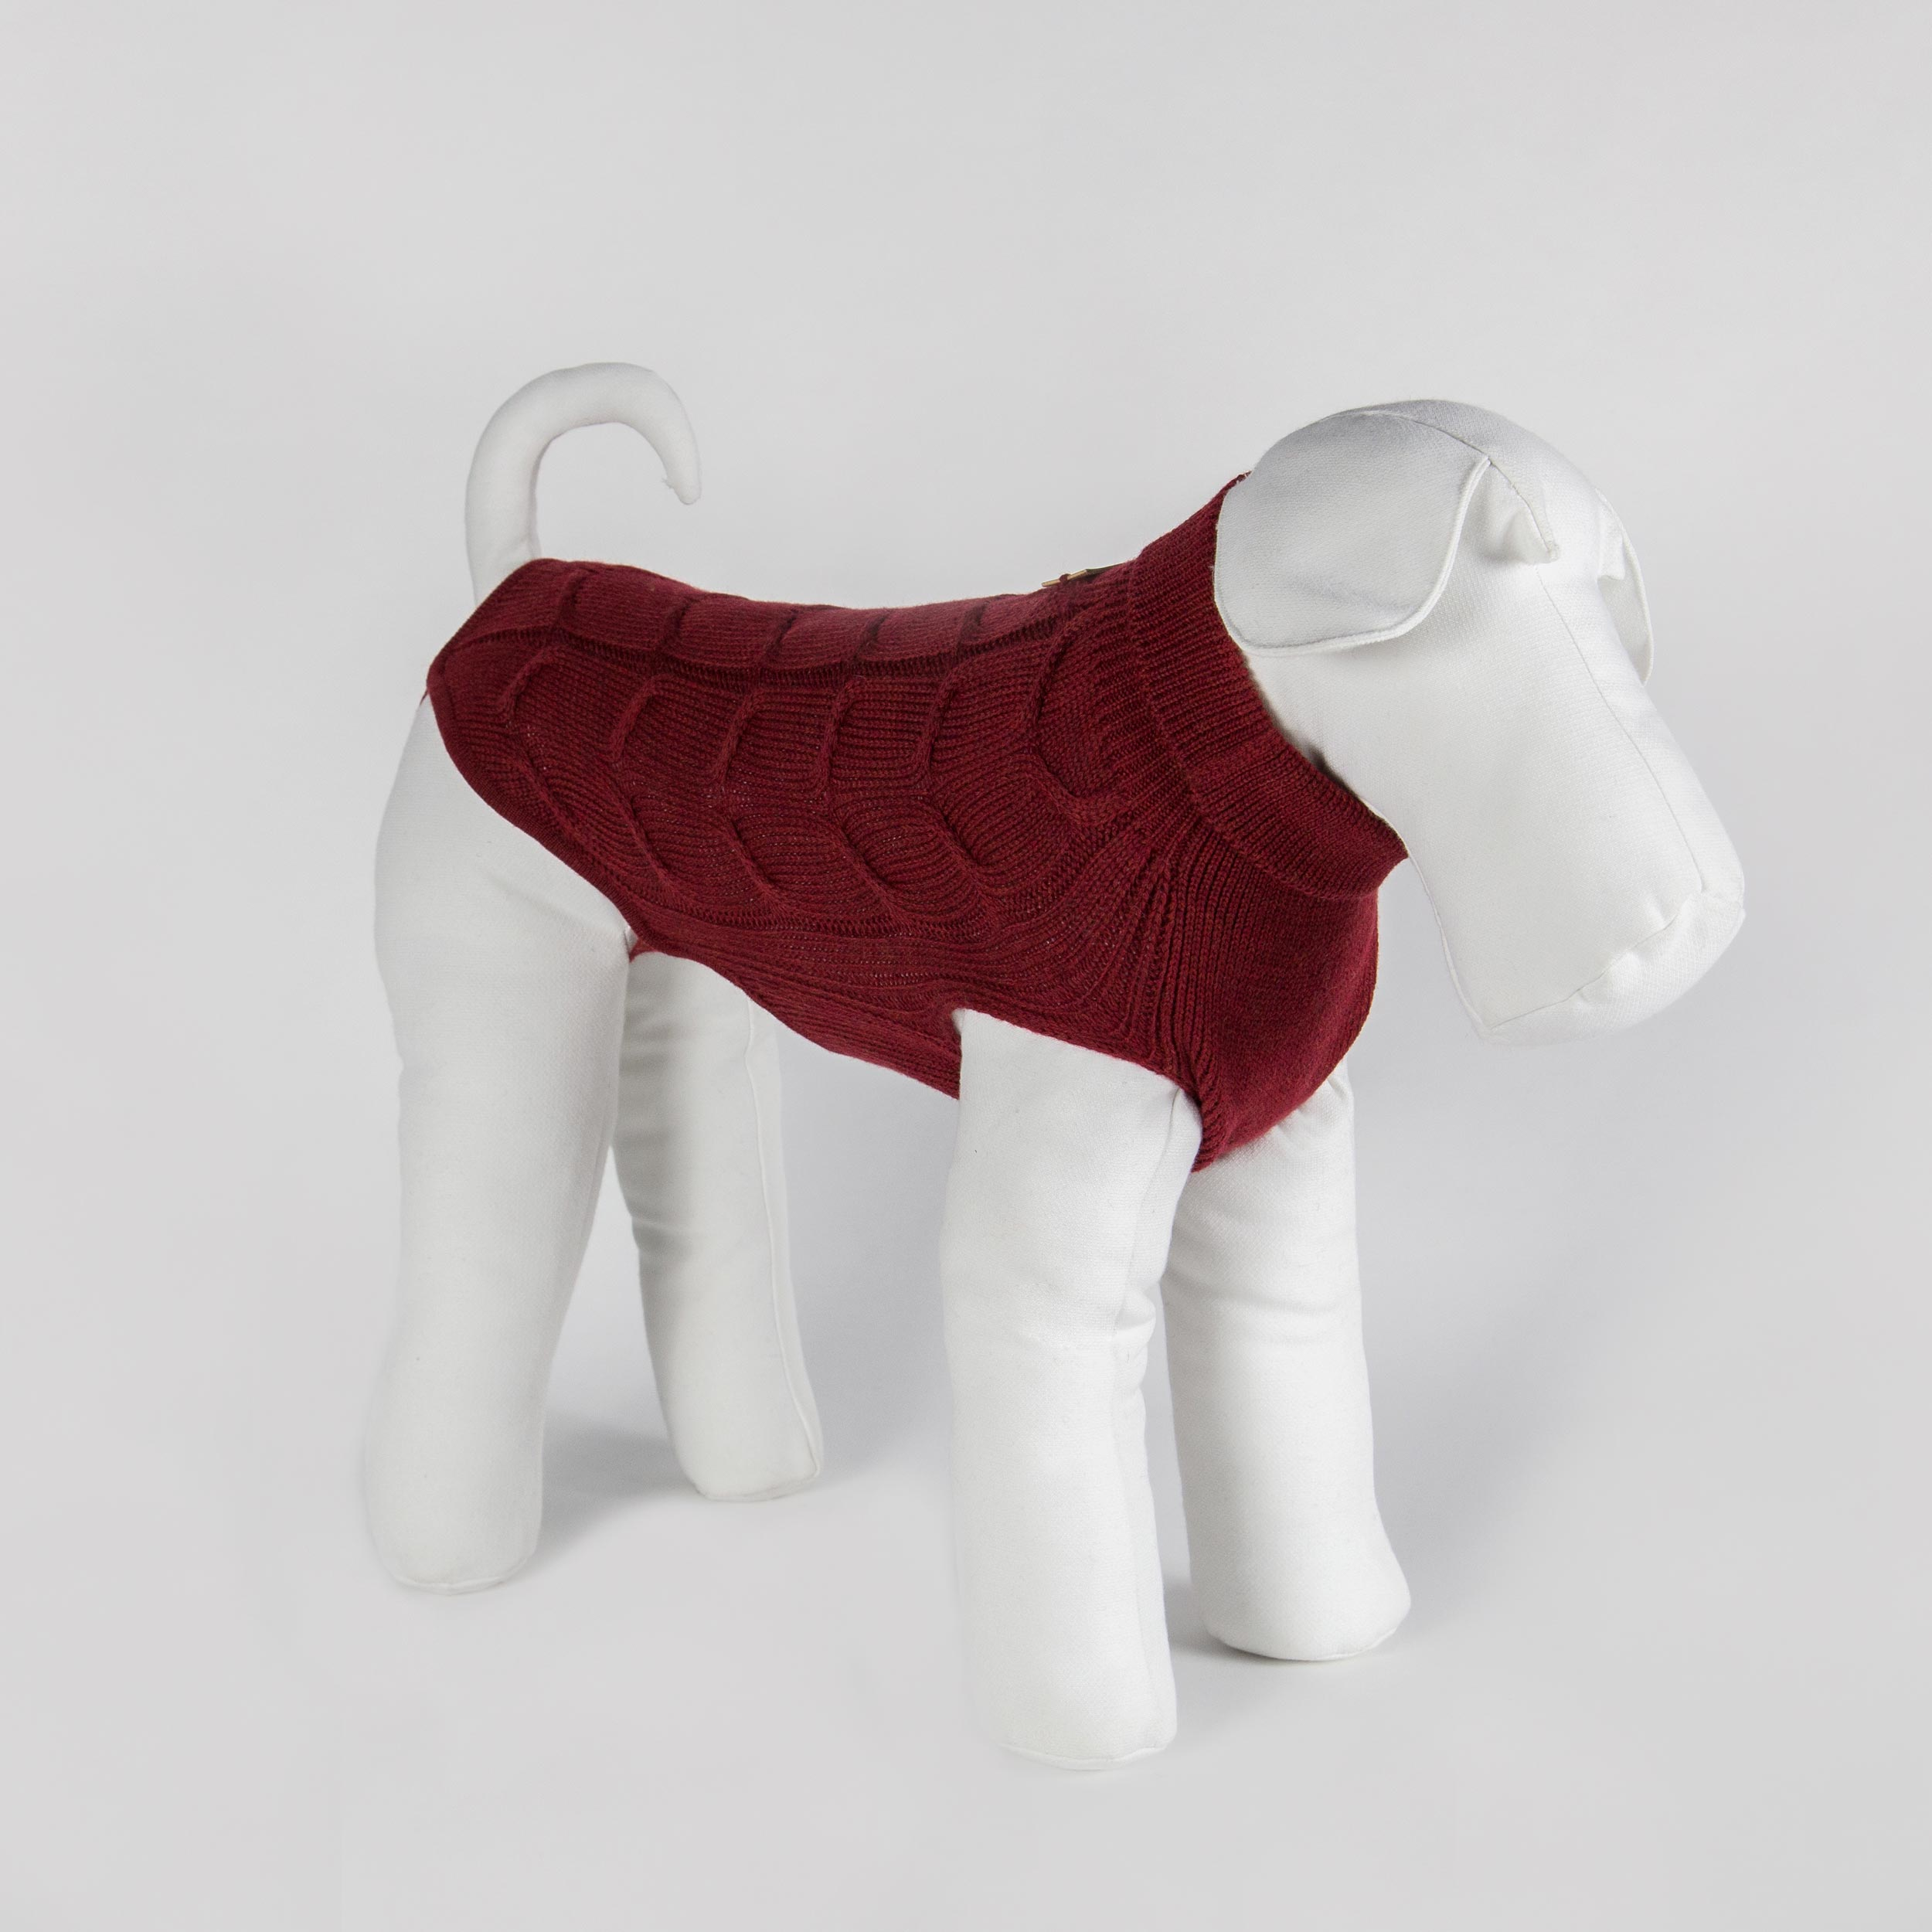 made-to-measure dog sweater in red pure wool